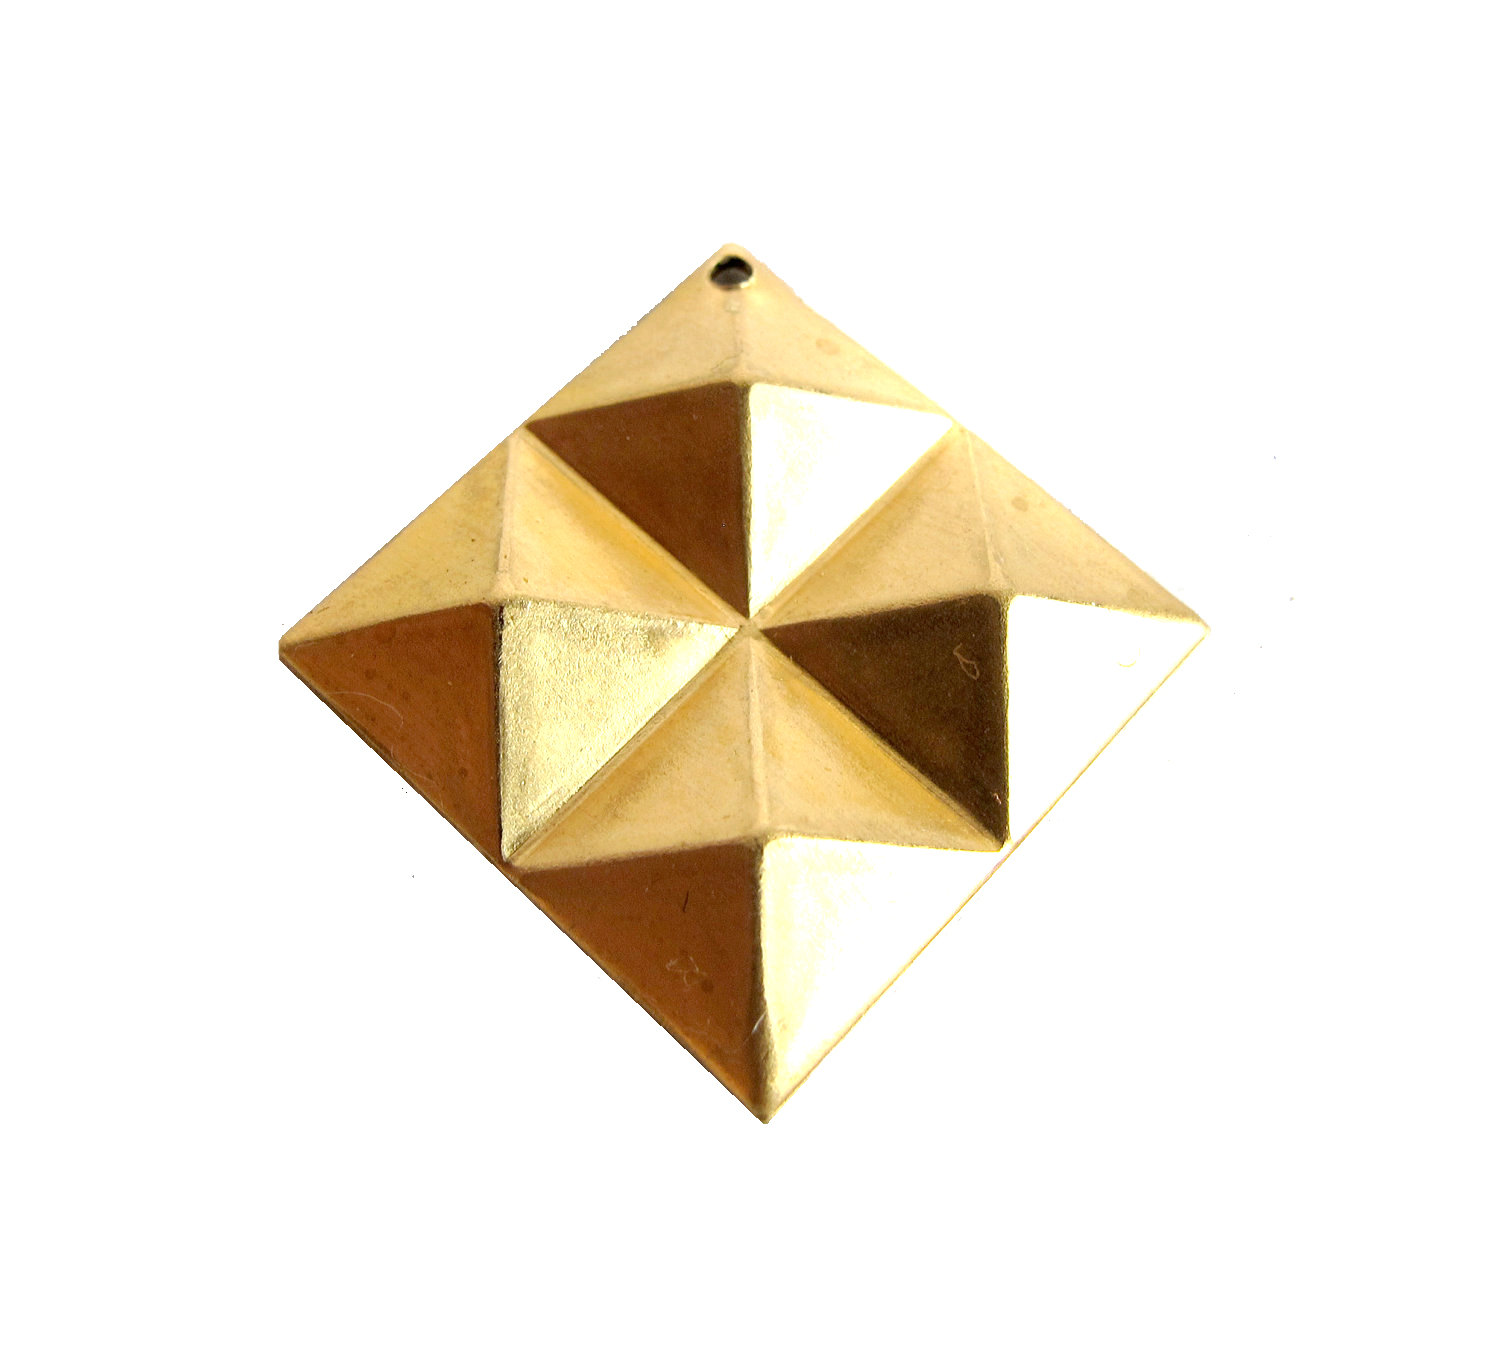 pearl natalie in runaway ivory products river designs gold stud romantic pyramid wood earrings